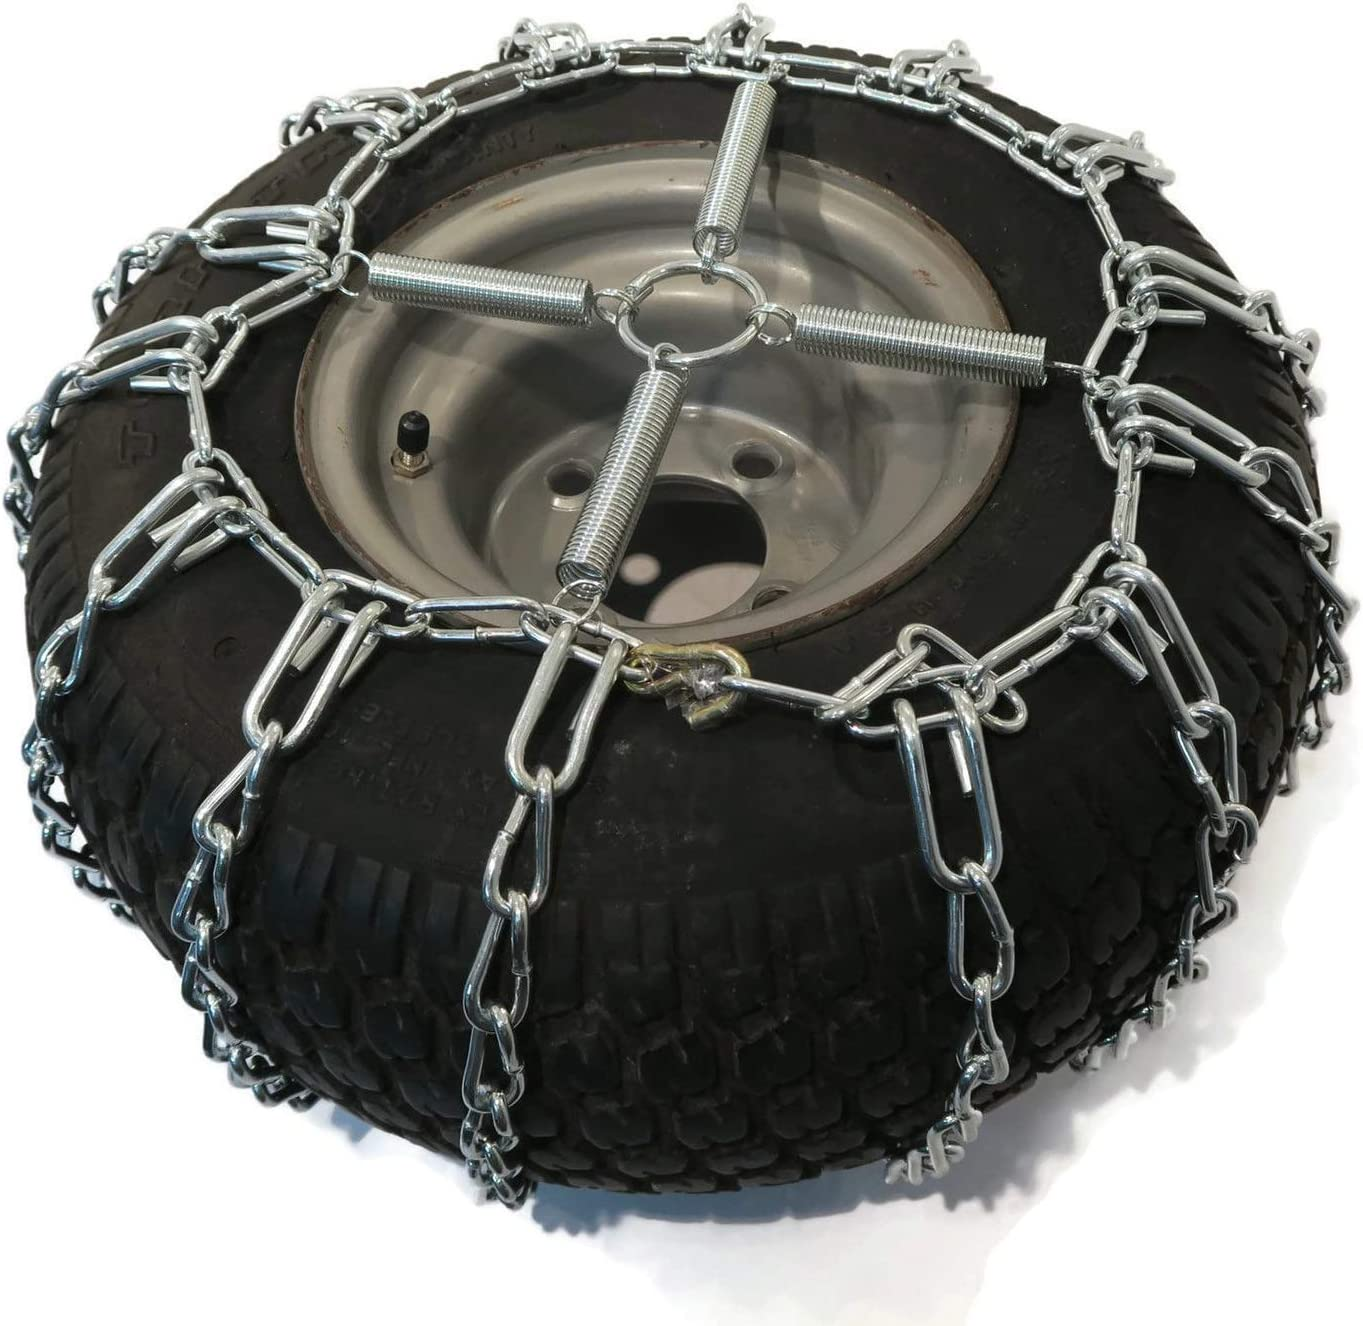 The ROP Shop   Pair of 2 Link Tire Chains & Tensionersfor Snow Blowers, Lawn & Garden Tractors, Mowers & Riders, UTV, ATV, 4-Wheelers, Utility Vehicles (18x8.5x10, with Tensioners) : Garden & Outdoor